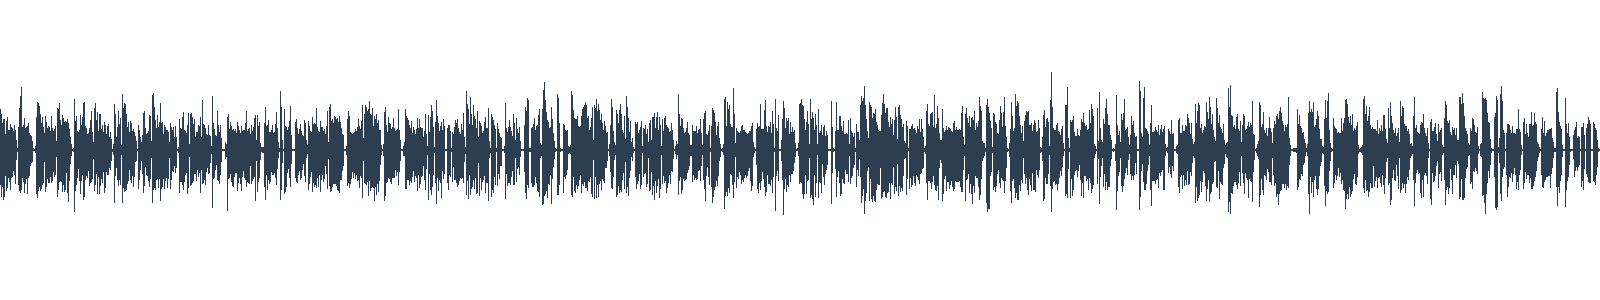 Vila Klára waveform